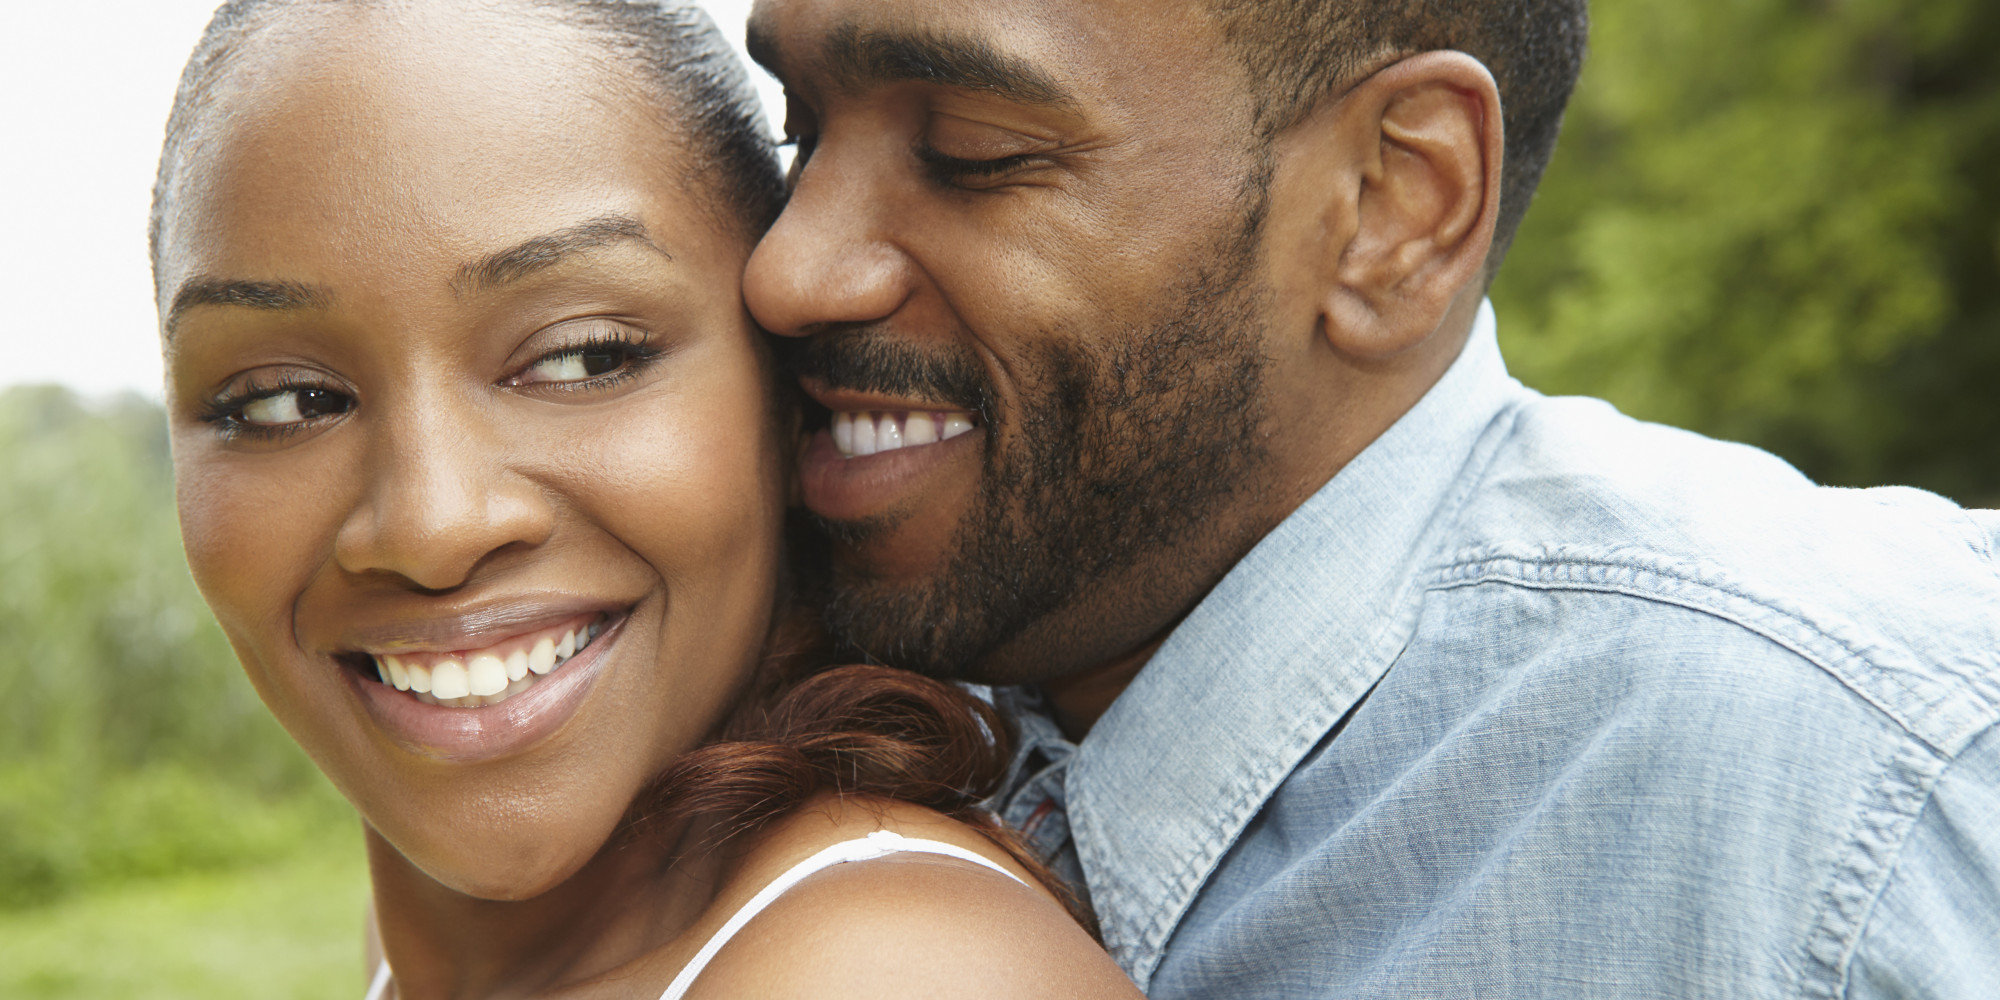 top 11 crazy small business ideas for young couples - topnaija